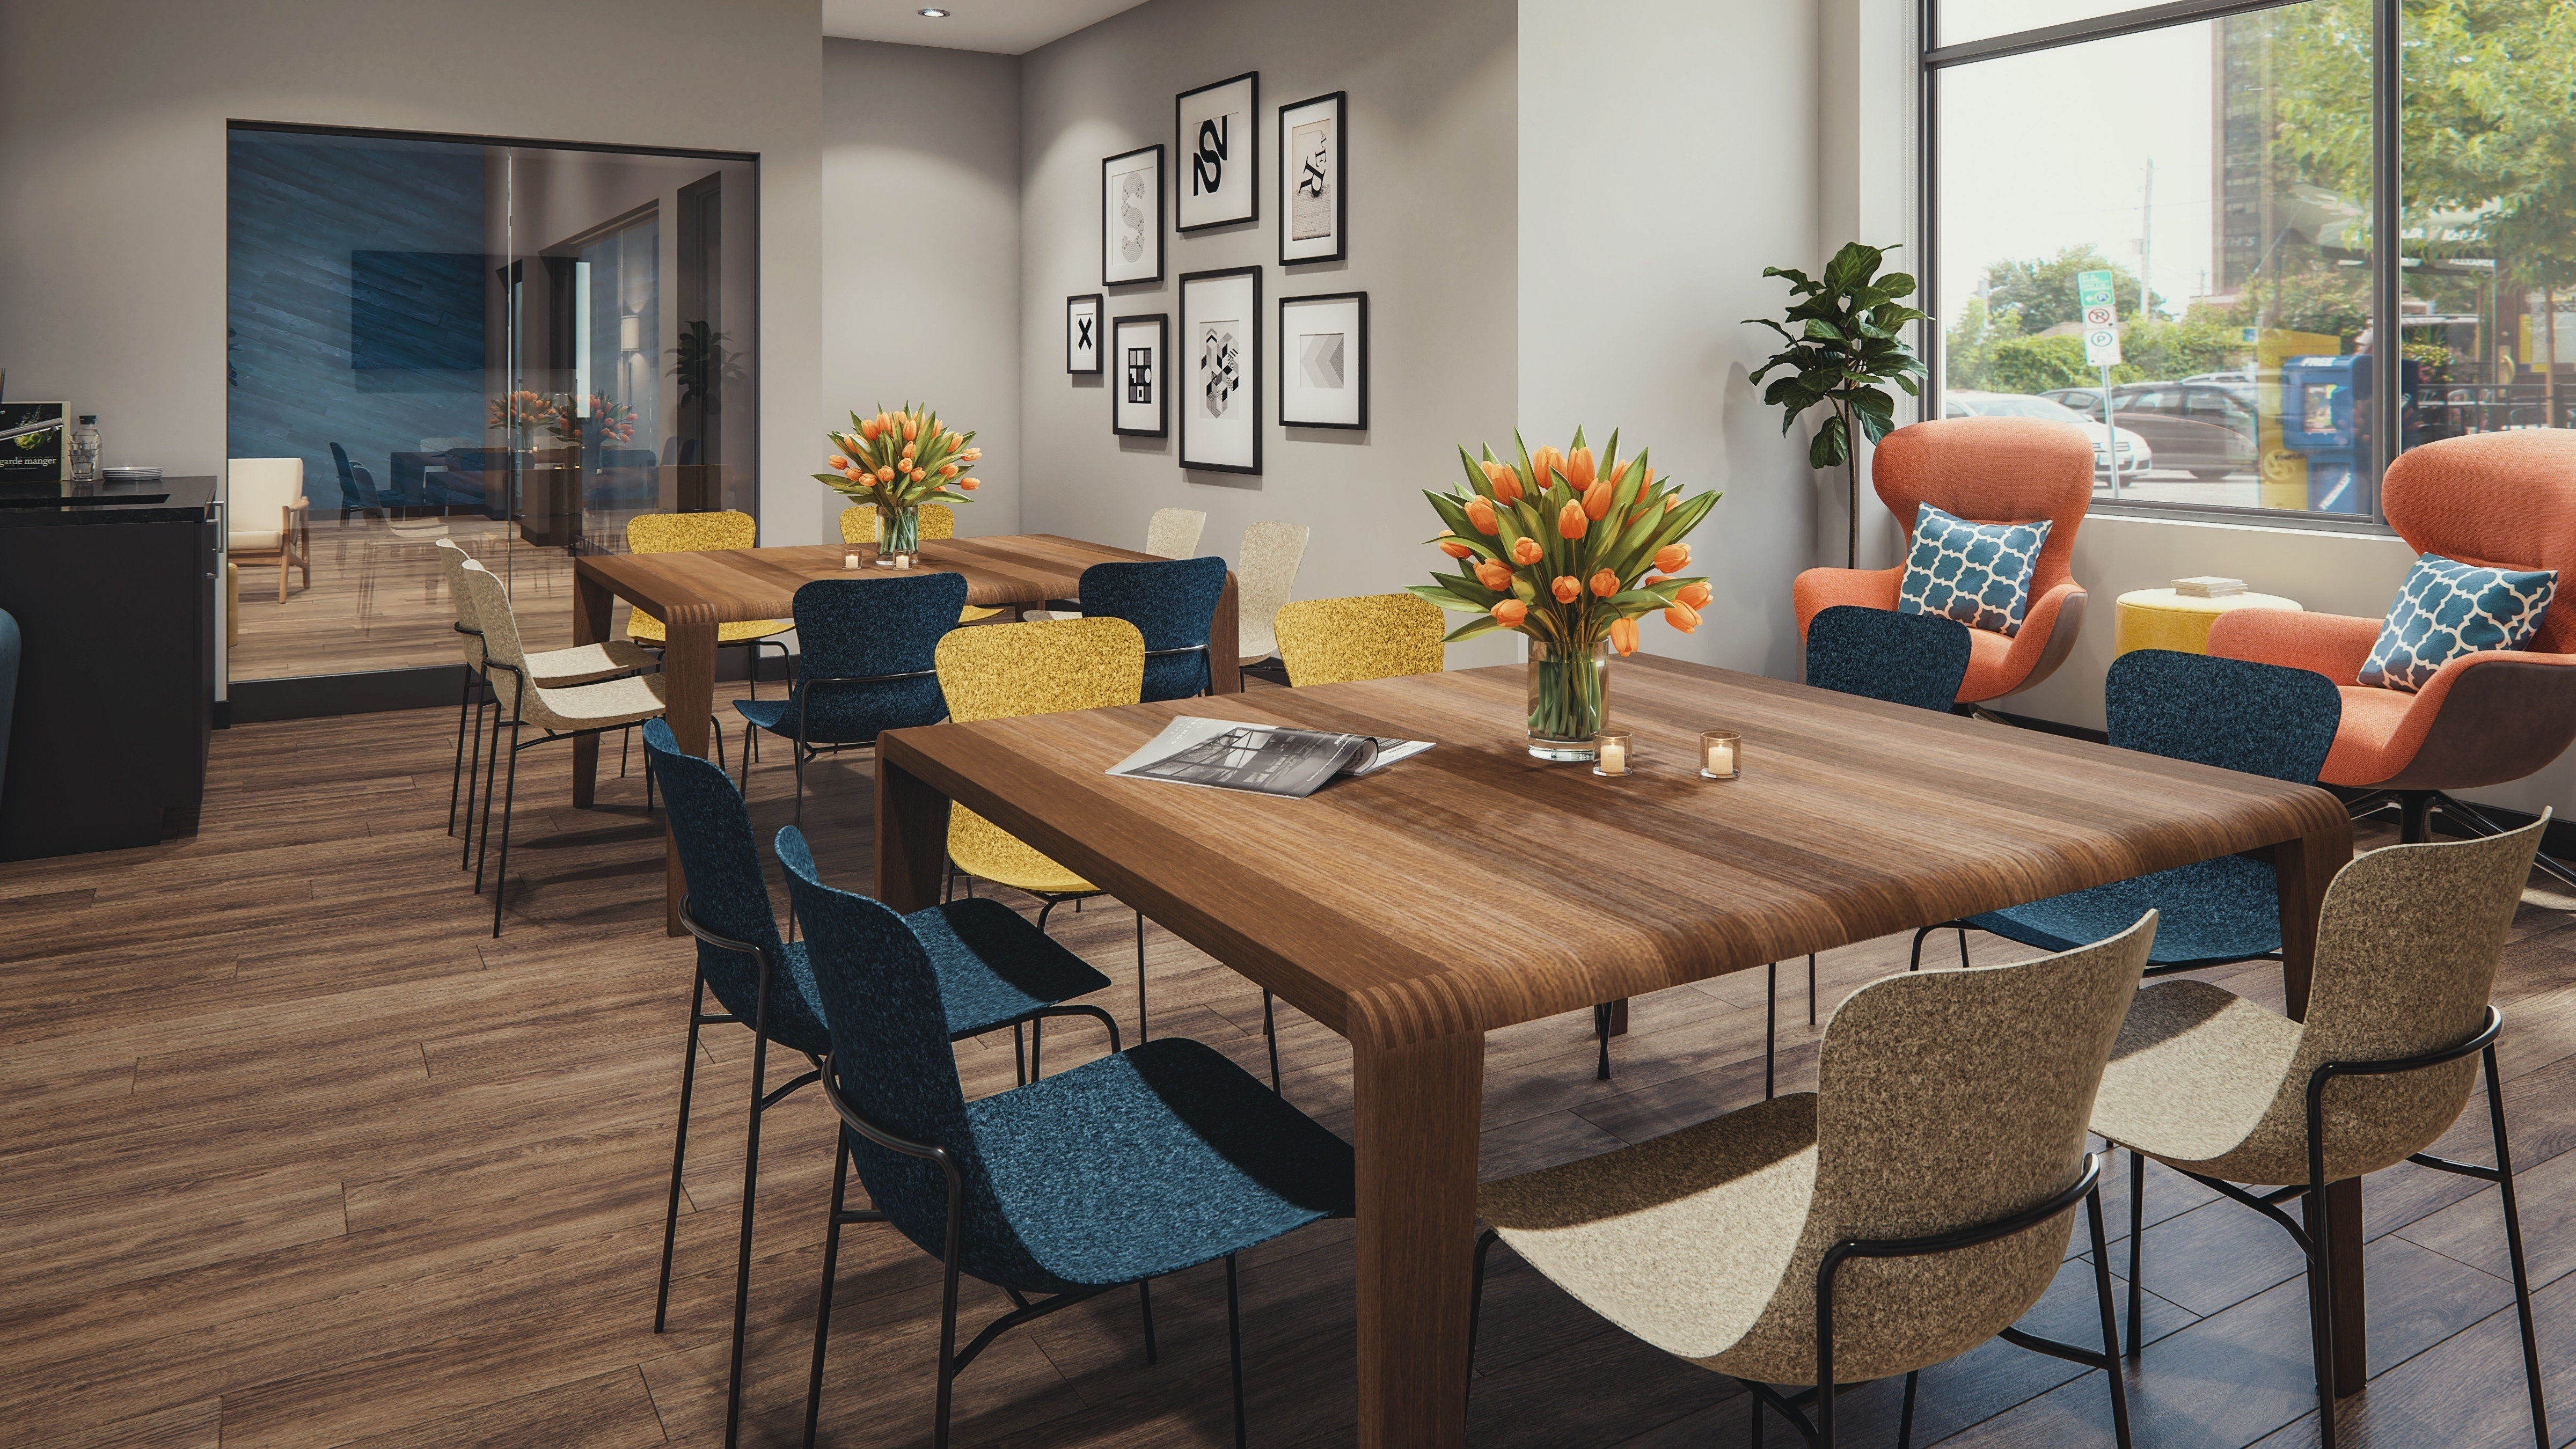 Rendering of party room with lounge chairs and farm style dining tables